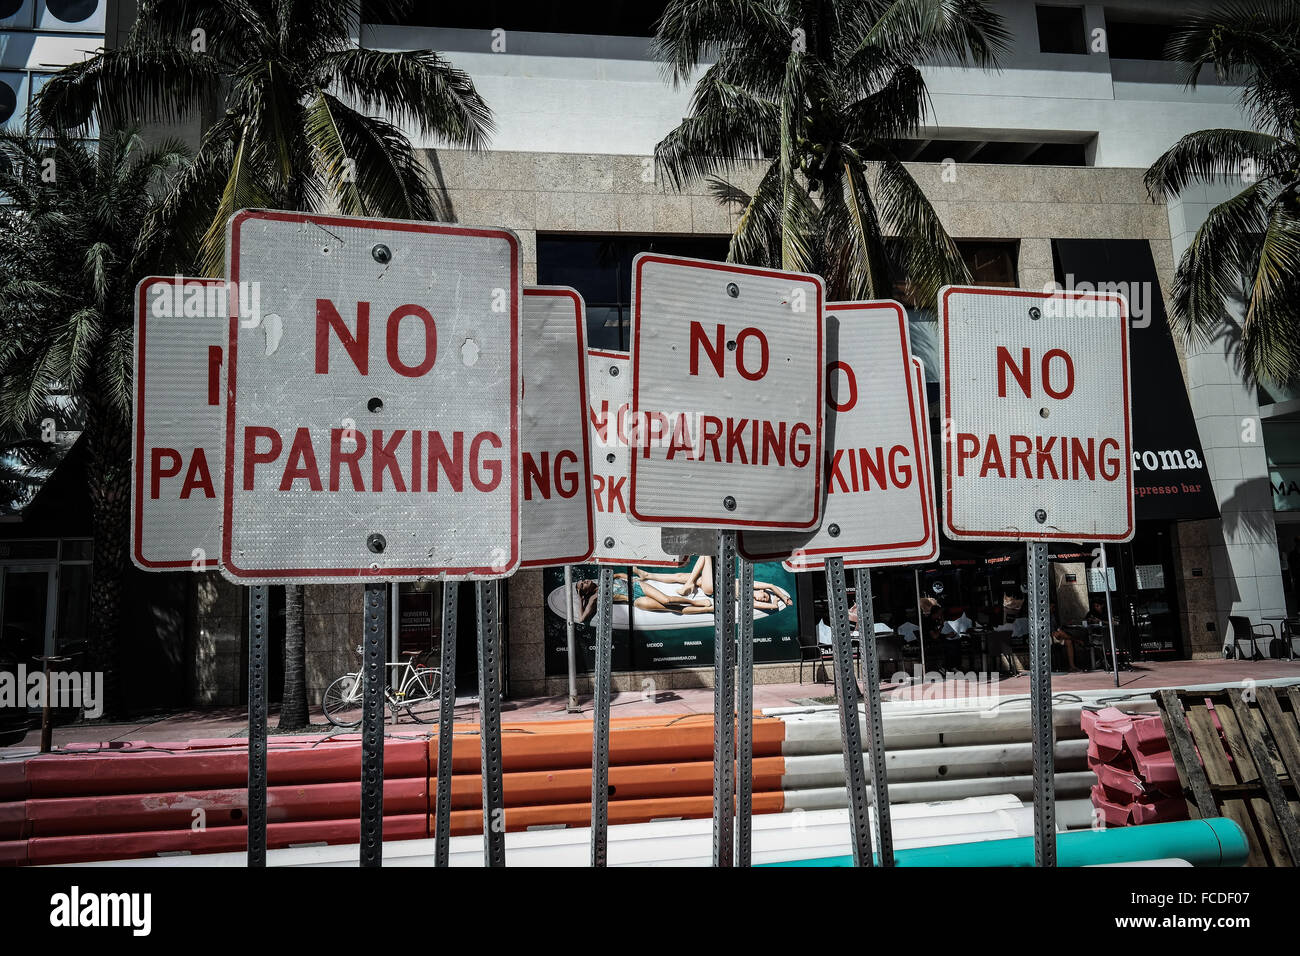 No Parking Signboards Against Building - Stock Image